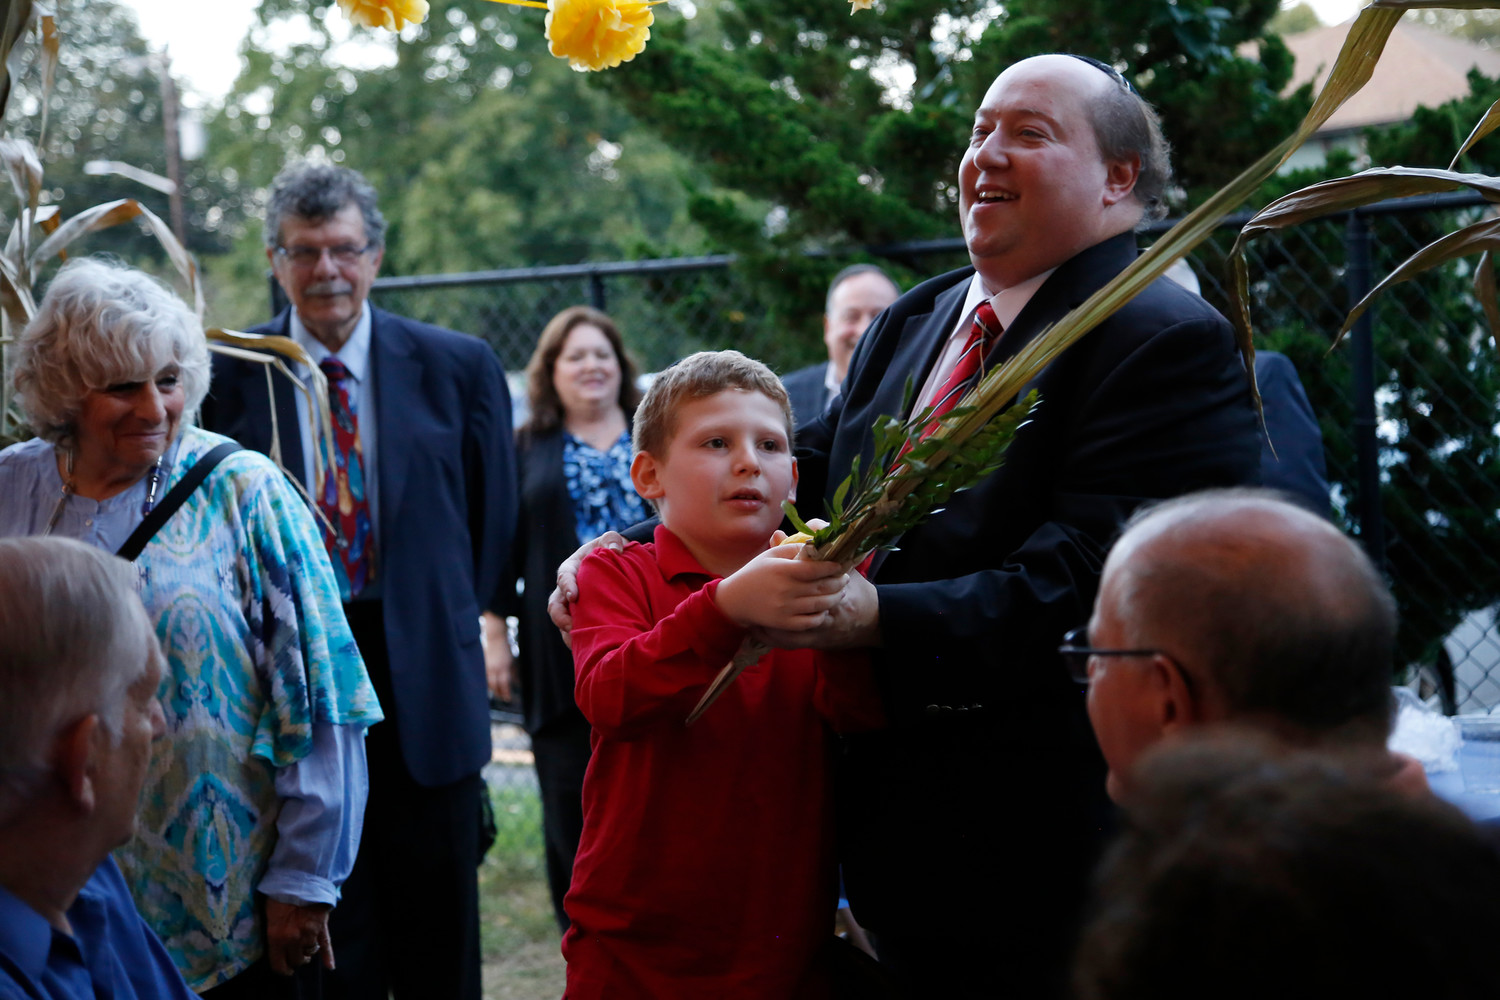 Ian Fishman helped Rabbi Mickey Baum shake the Lulav at Friday night's dinner in the sukkah, at Temple Beth Am of Bellmore and Merrick. The Herald was there to capture one of the most joyous evenings in the Jewish faith.